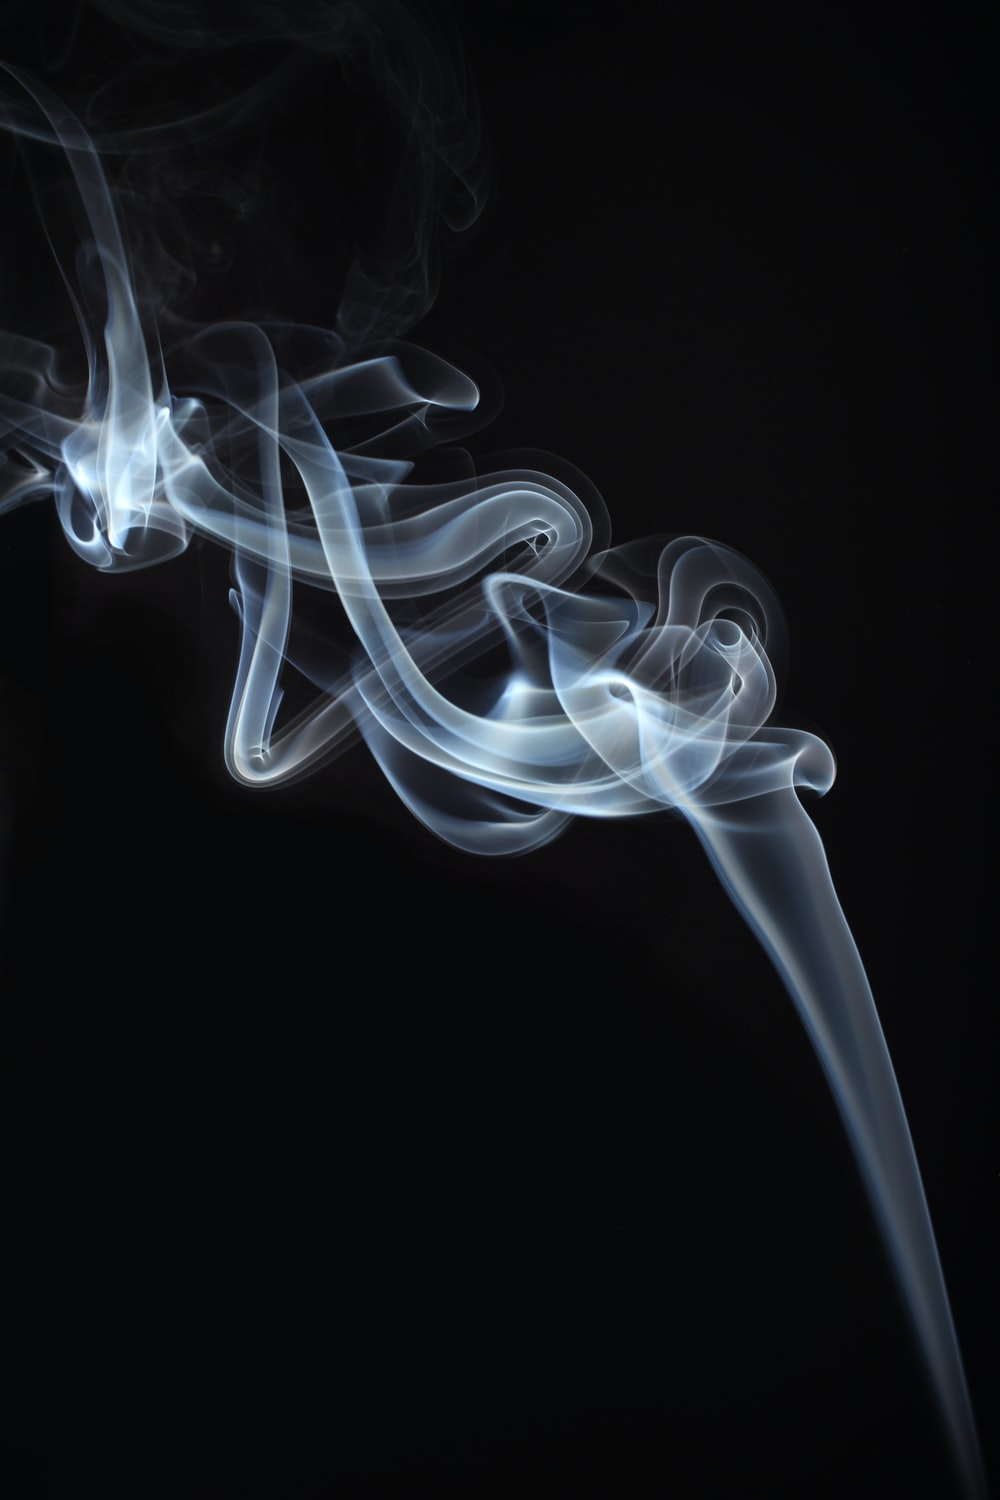 Black and white smoke pictures download free images on unsplash